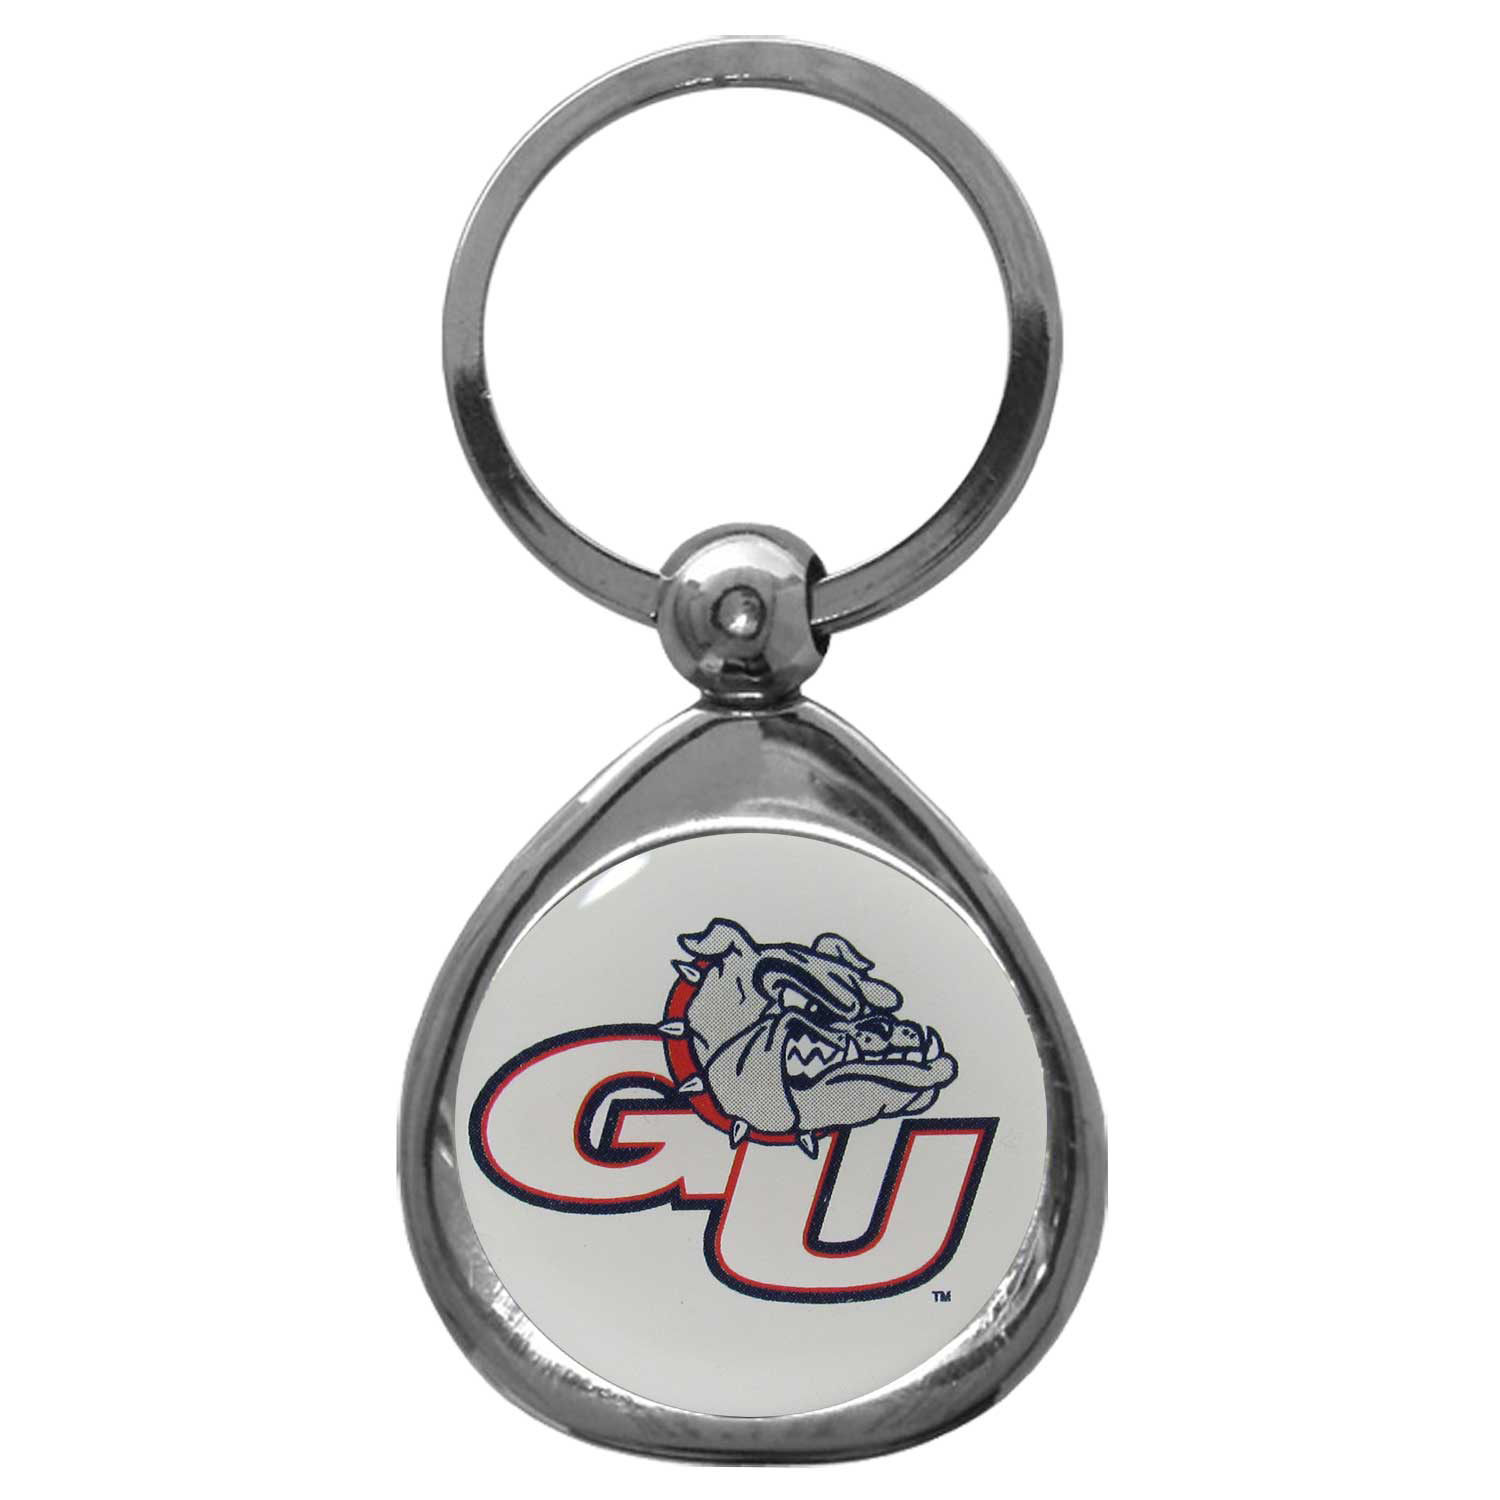 Gonzaga Bulldogs Chrome Key Chain - Our stylish, high-polish Gonzaga Bulldogs key chain is a great way to carry your team with you. The key fob features a raised team dome.